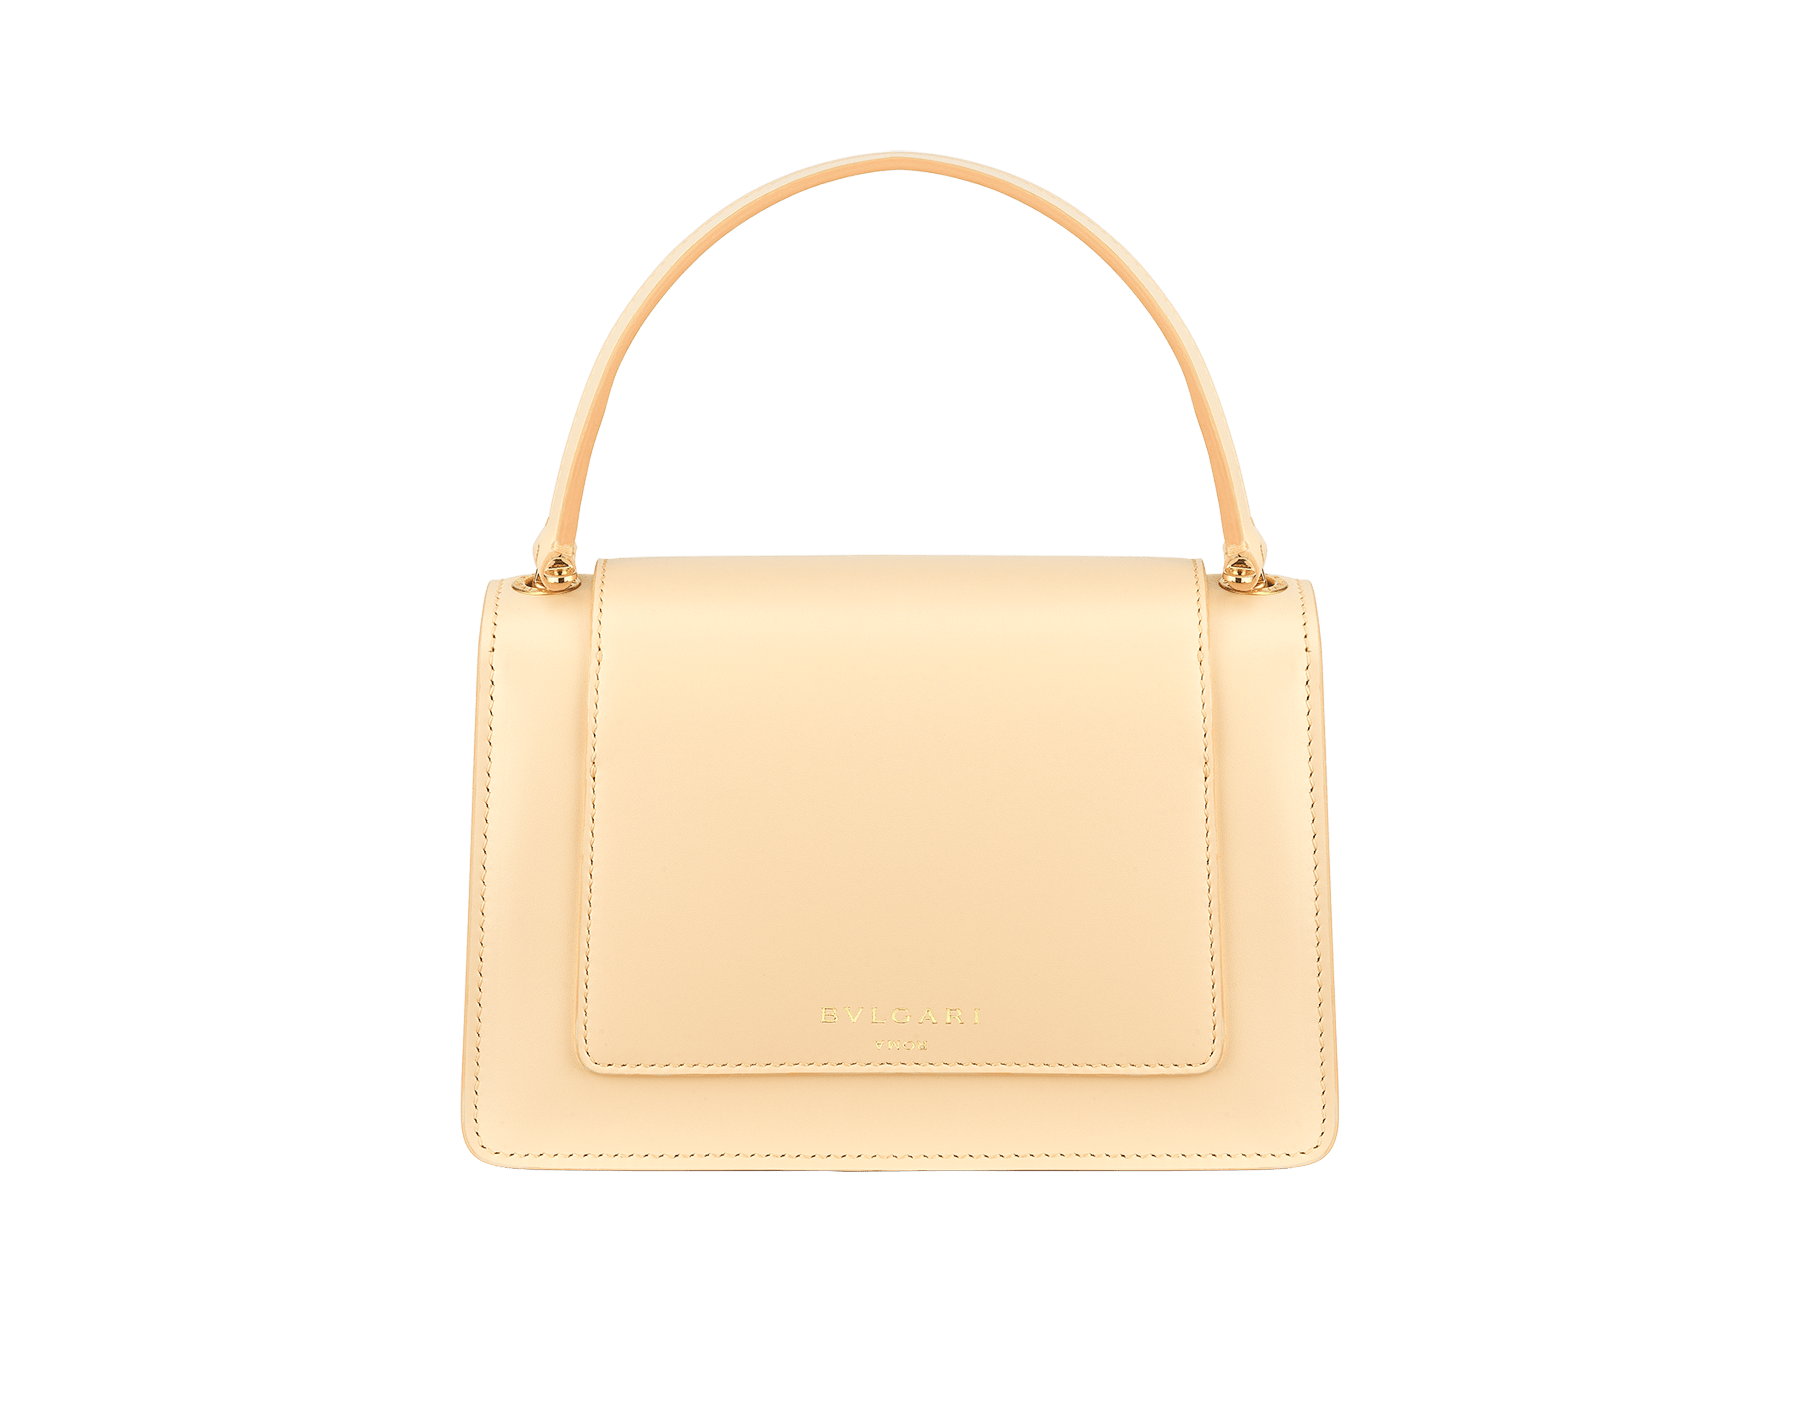 """Alexander Wang x Bvlgari"" belt bag in smooth peach calf leather. New double Serpenti head closure in antique gold-plated brass with tempting red enamel eyes. SFW-001-1029S image 3"